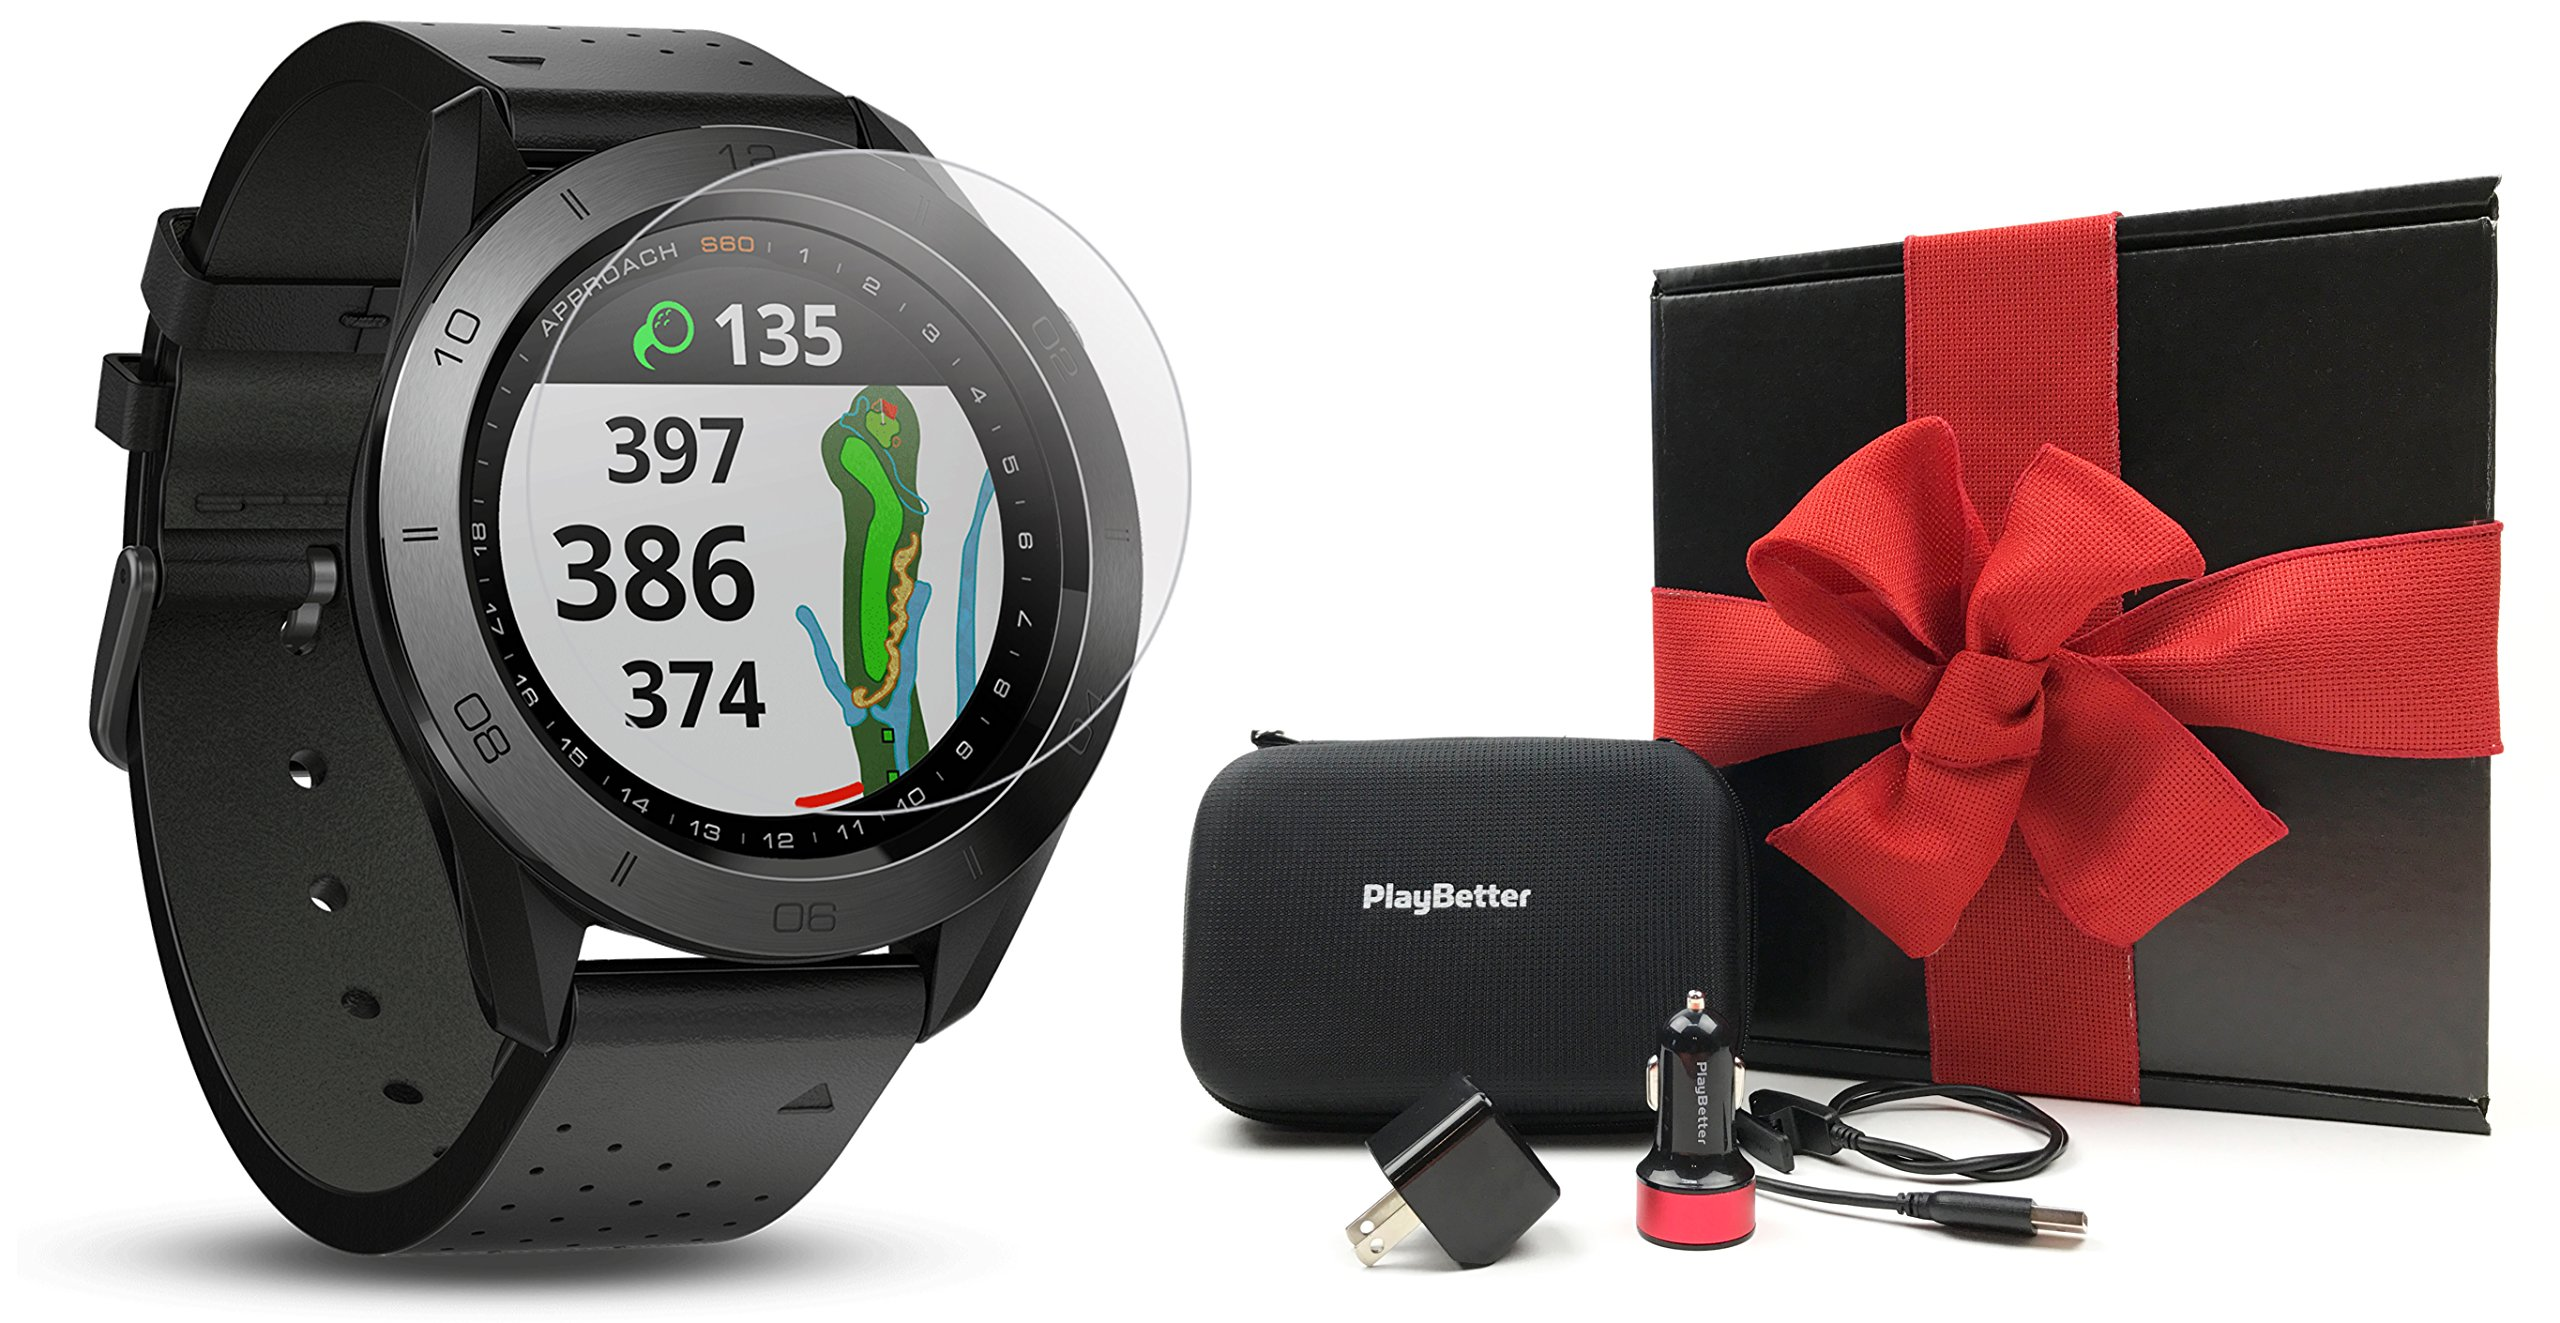 Garmin Approach S60 (Premium) Gift Box Bundle | Includes Glass Screen Protector, PlayBetter USB Car/Wall Charging Adapters & Protective Hard Case | Golf GPS Watch (Ceramic Bezel/Black Leather Band)